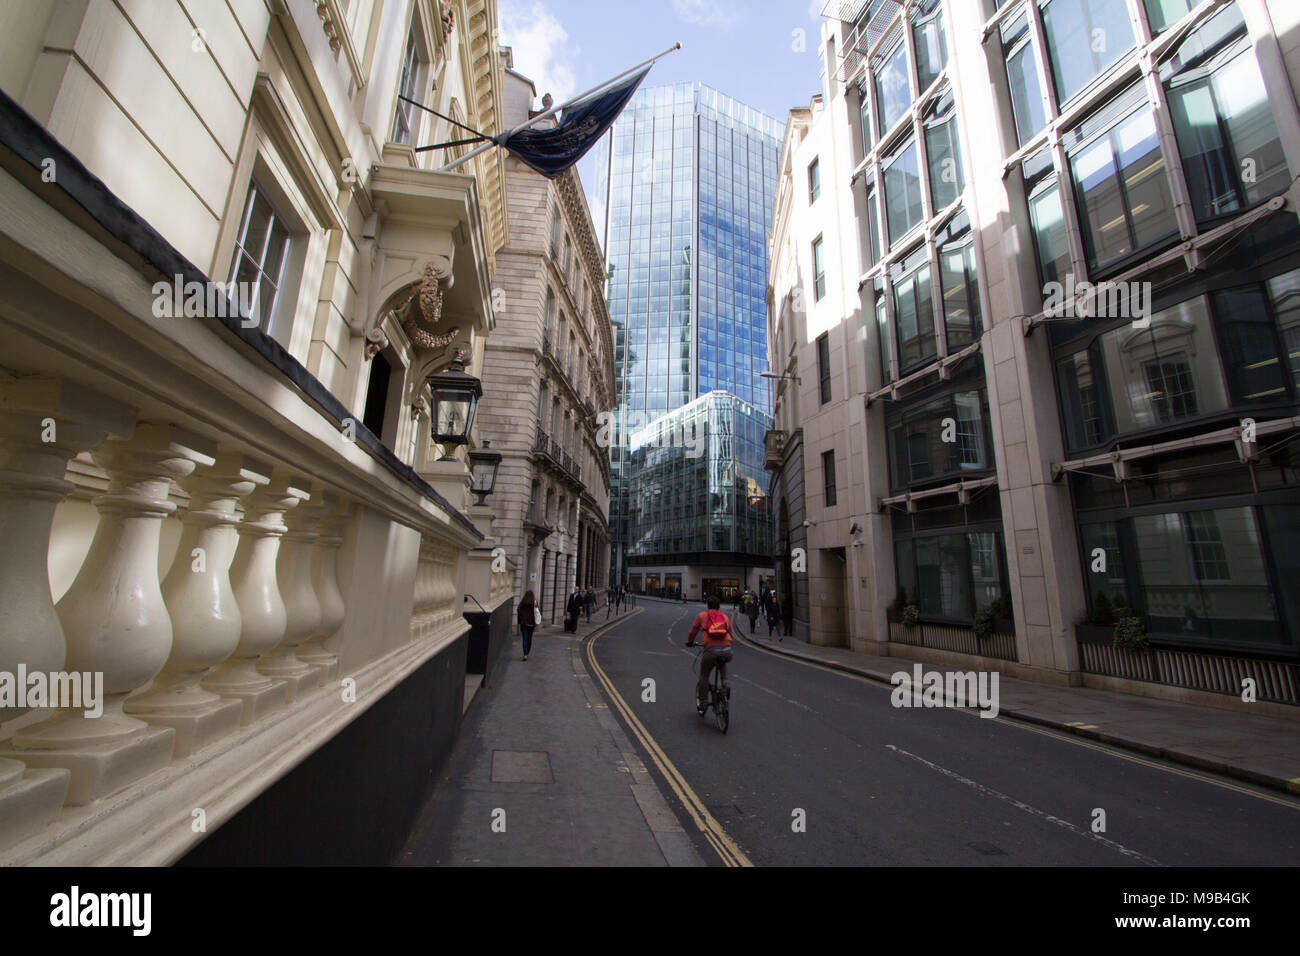 The City of London Club the  oldest of the gentlemen's club based in the City of London. The Italian Palladian-style building was designed by English architect Philip Hardwick - Stock Image